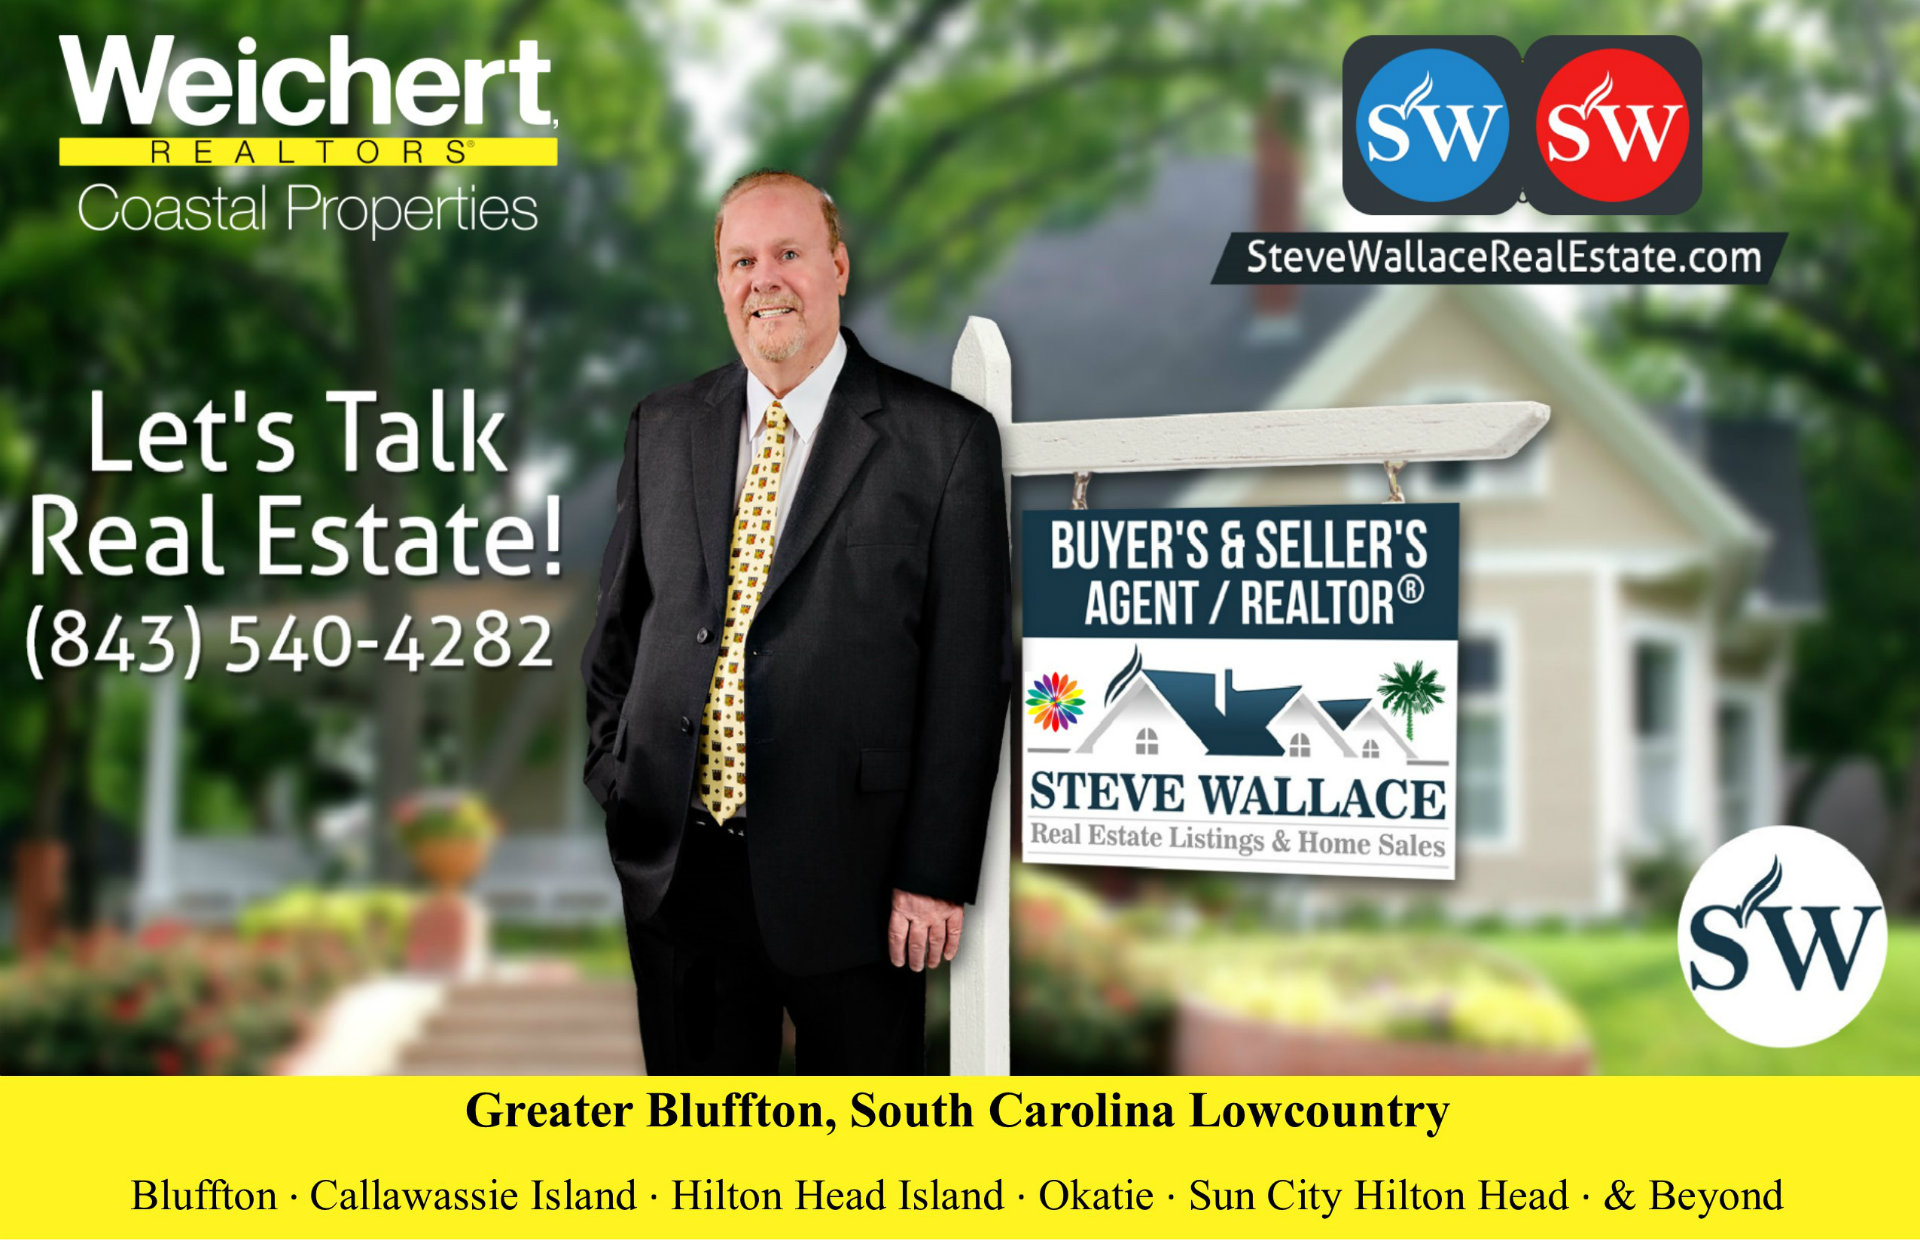 buying a home, greater bluffton, south carolina, lowcountry, real estate